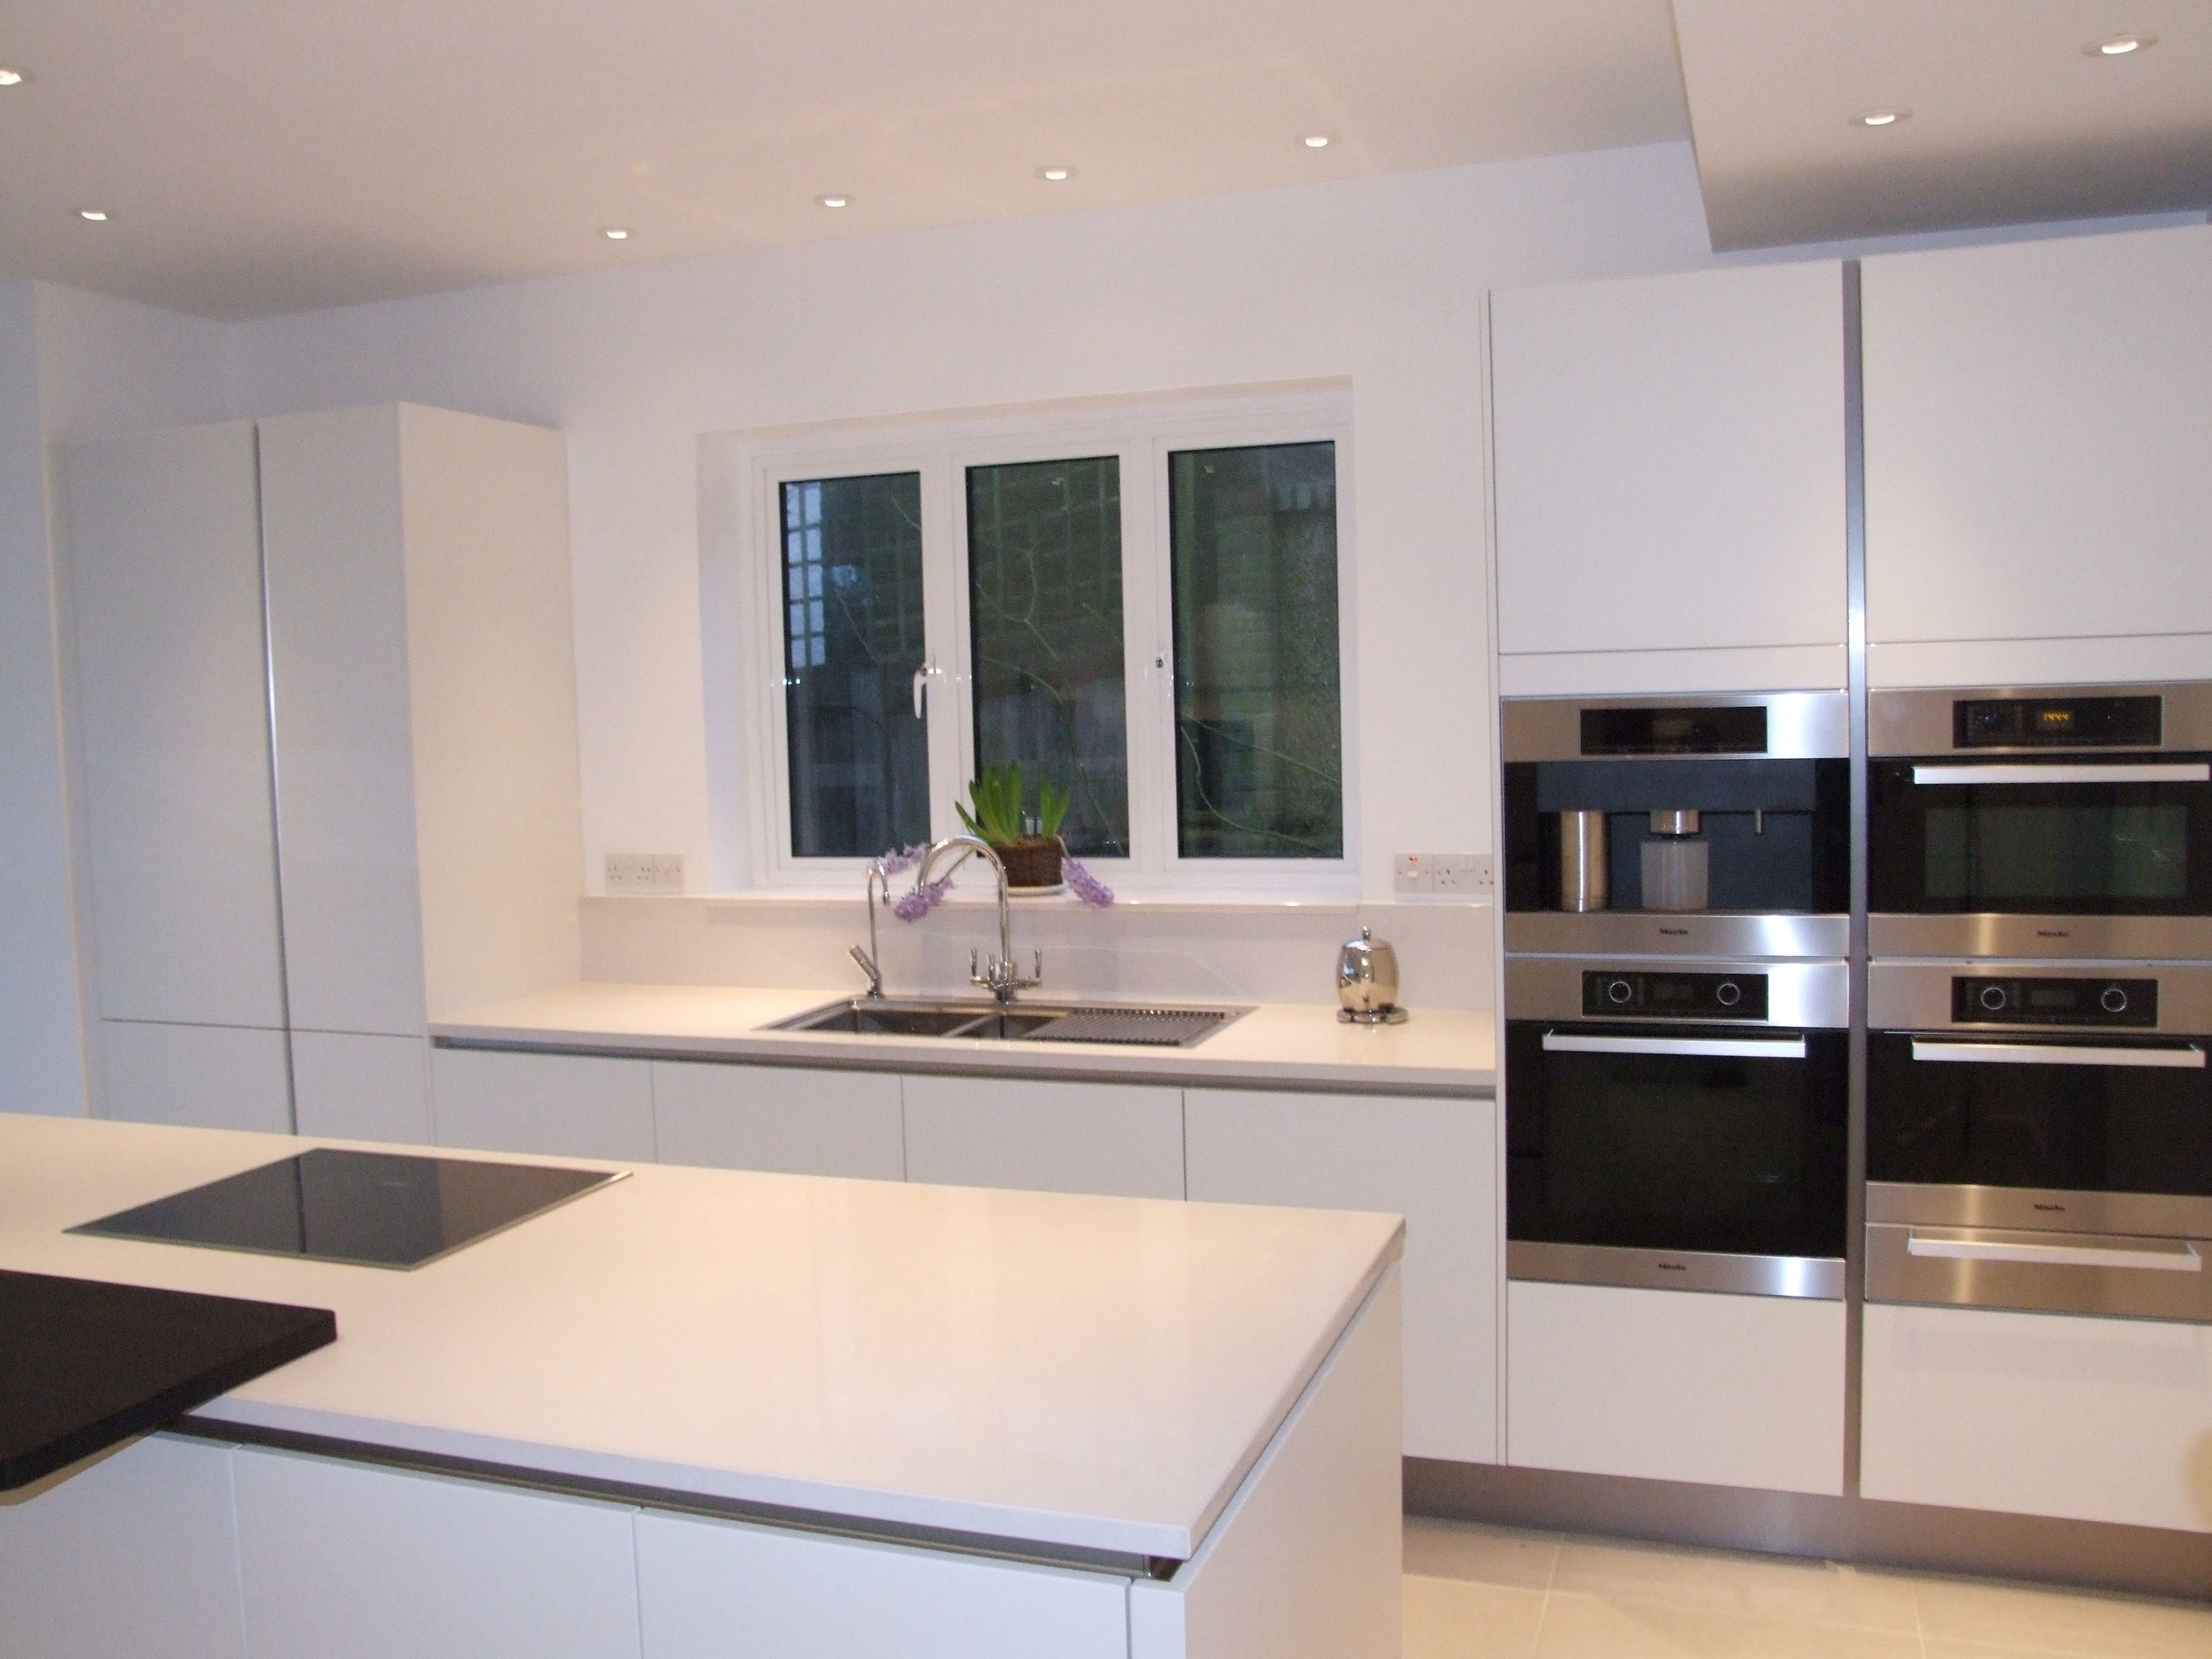 A Bank Of Appliances Create A Great Feature In Crisp White On White Kitchens!  #